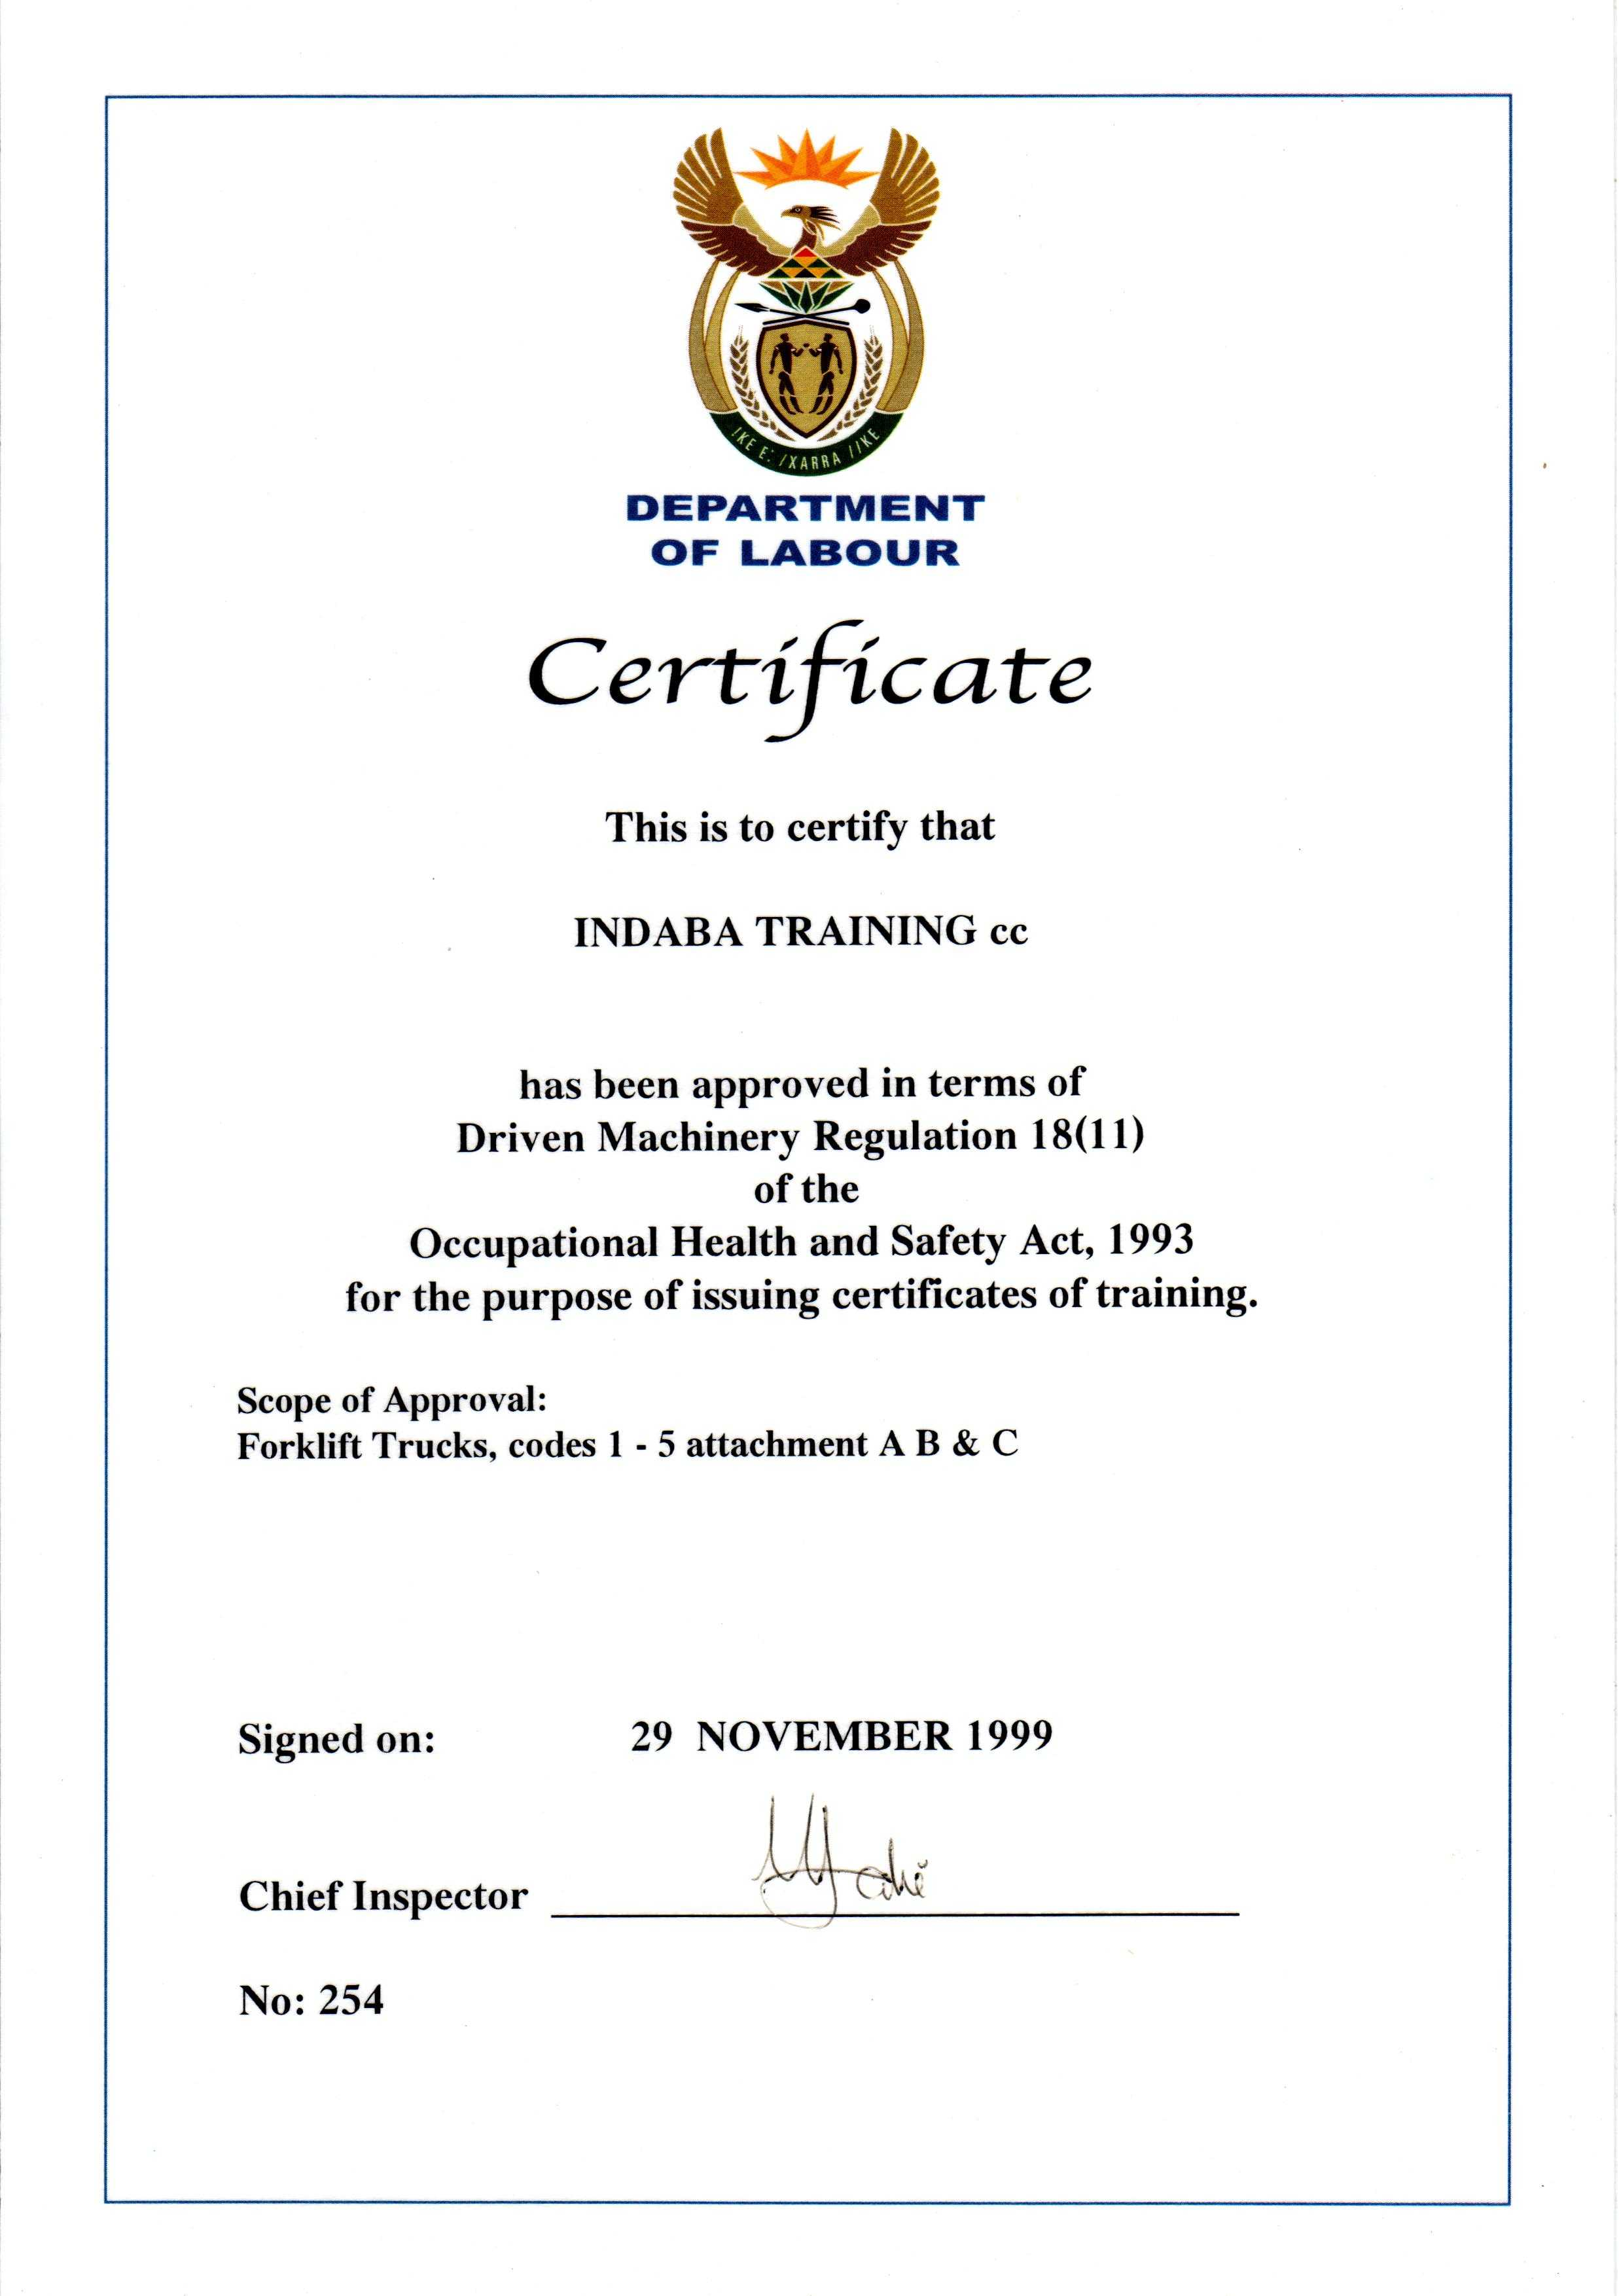 Indaba training forklift truck codes 1 5 1betcityfo Image collections